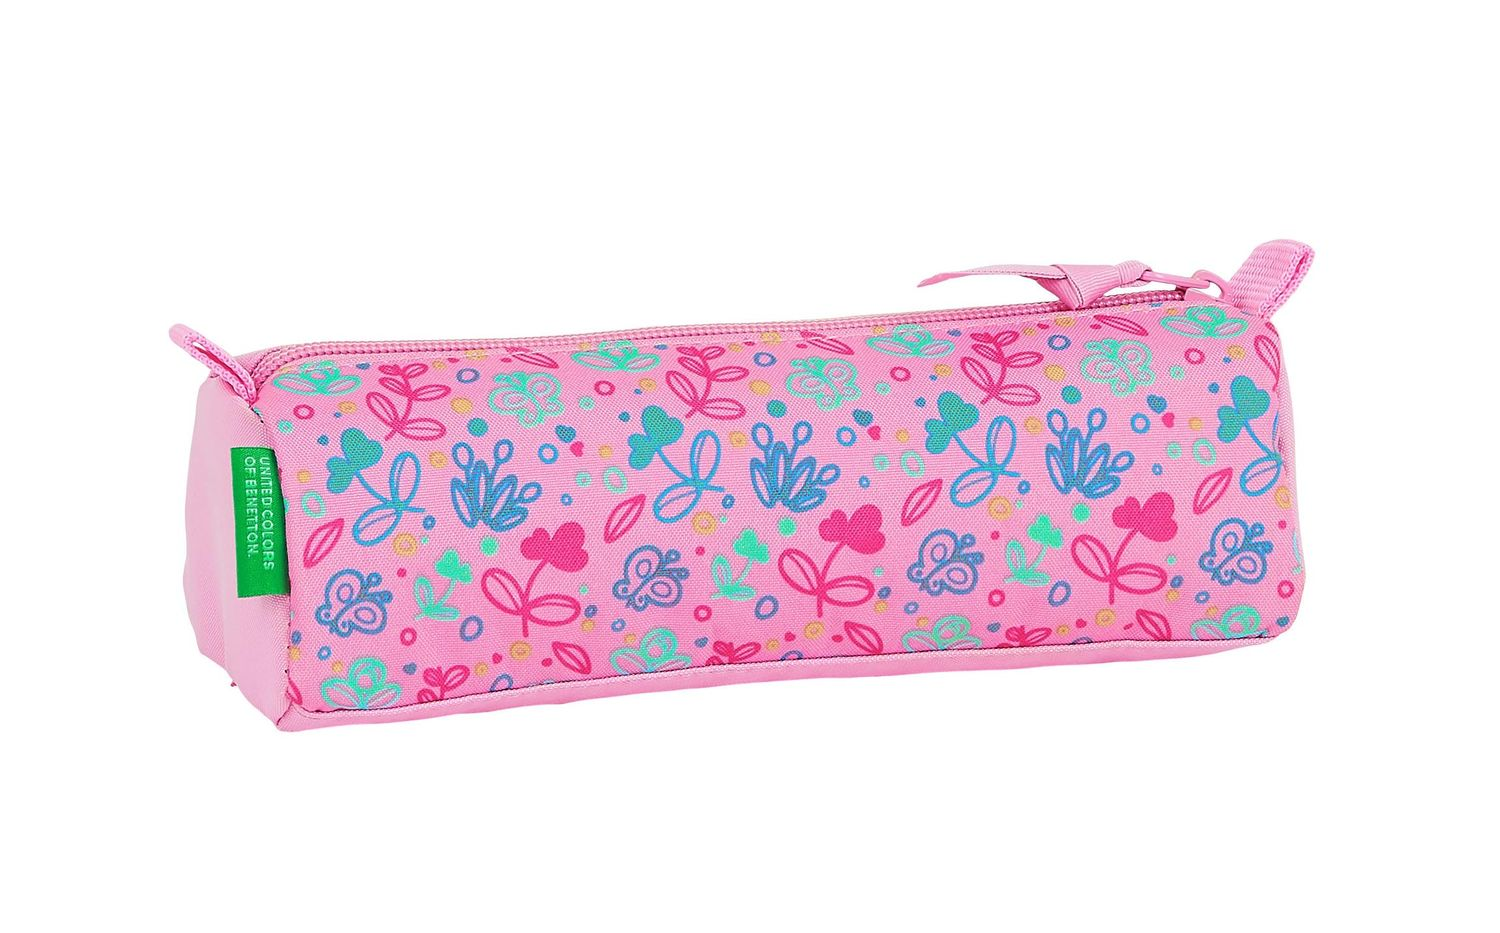 BENETTON Pink BUTTERFLIES Square Pencil Case – image 2